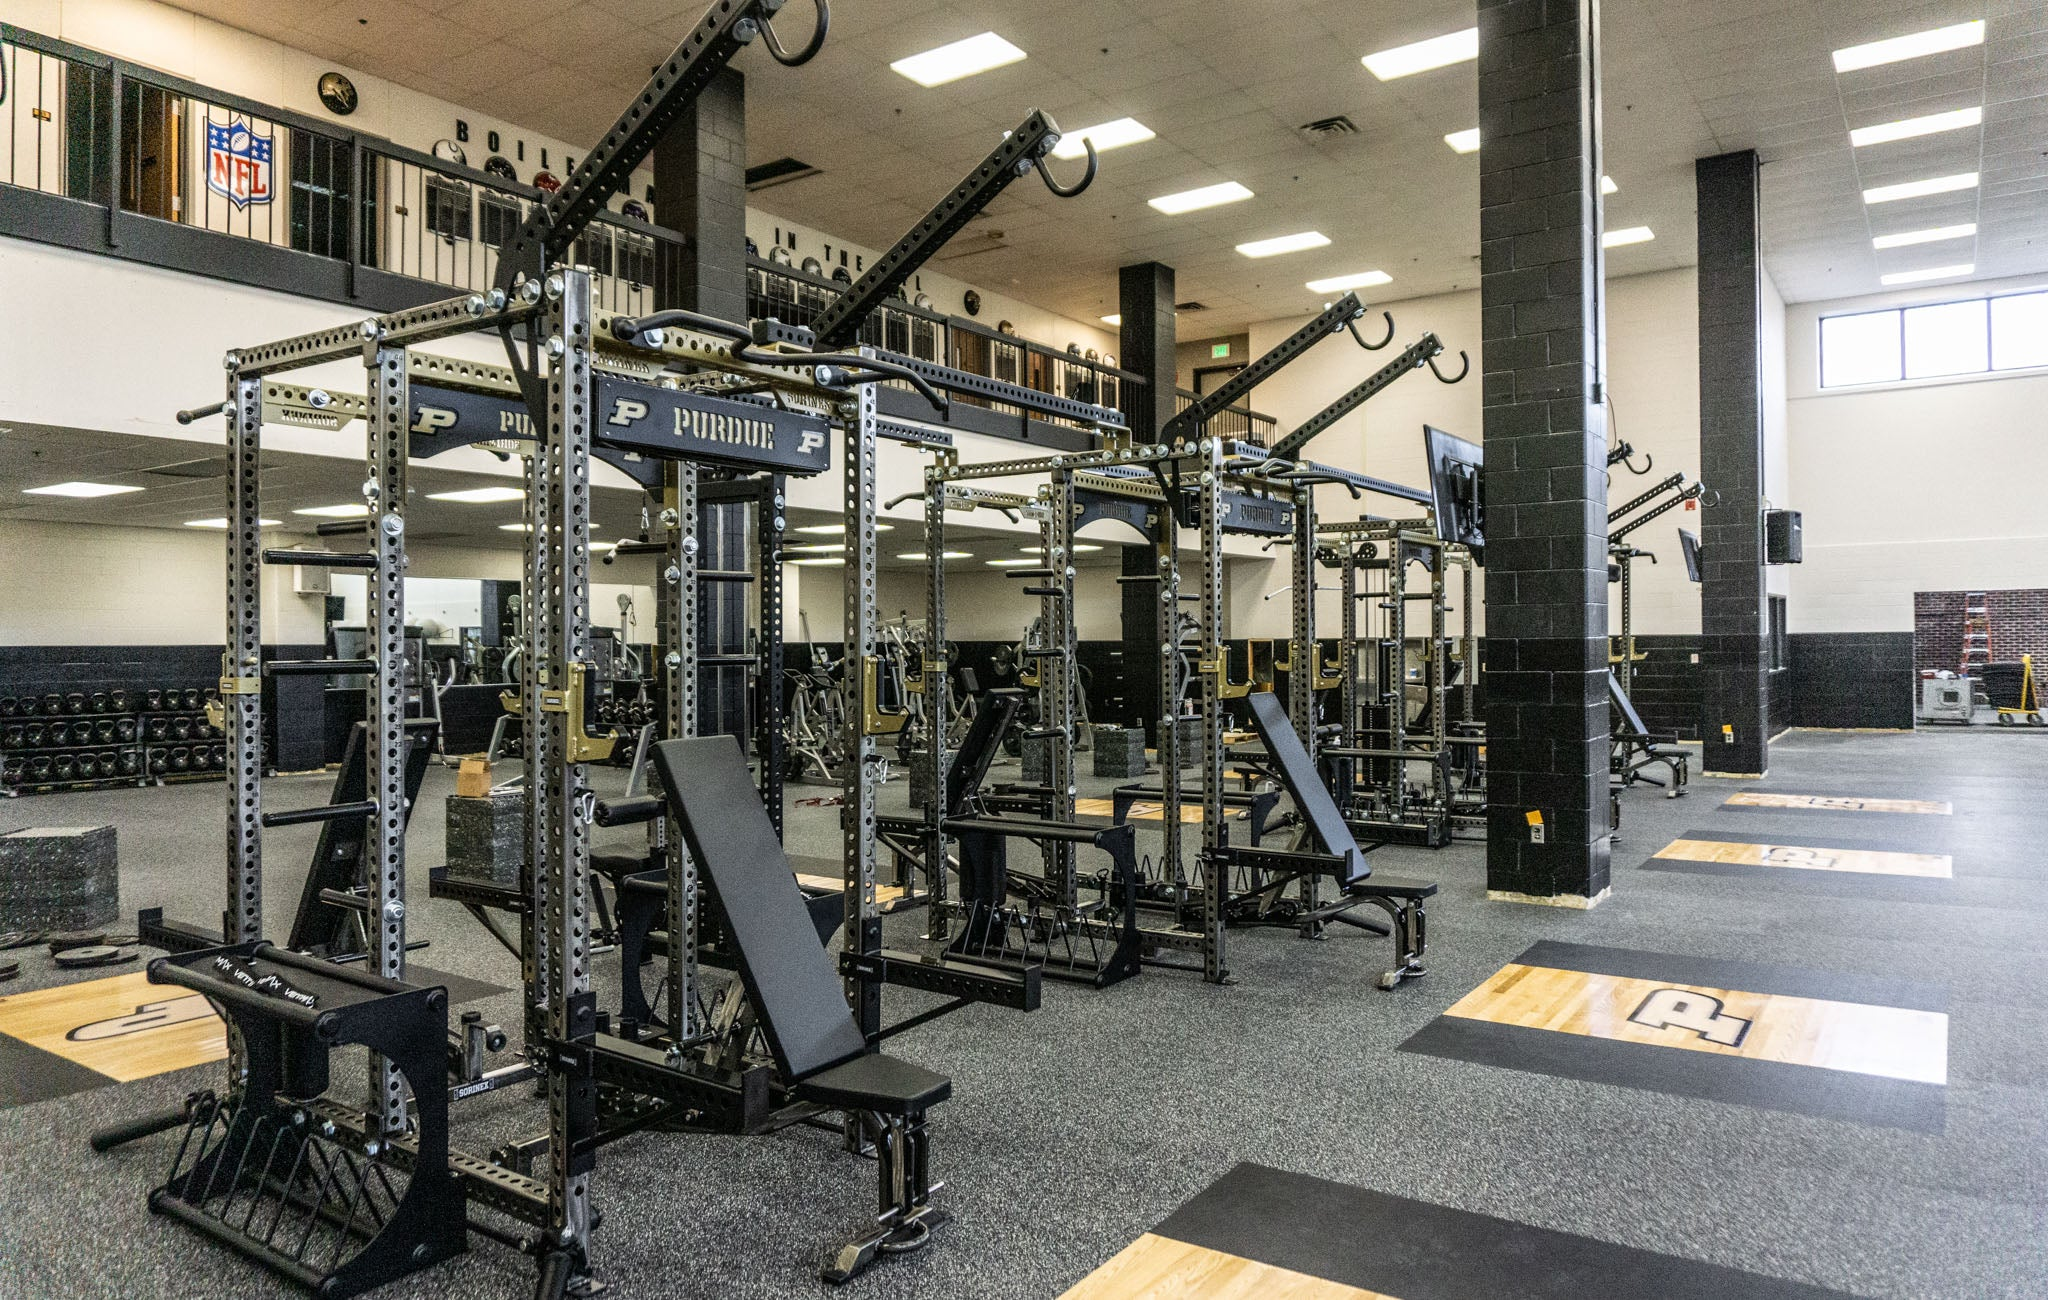 Purdue University Olympic strength and conditioning